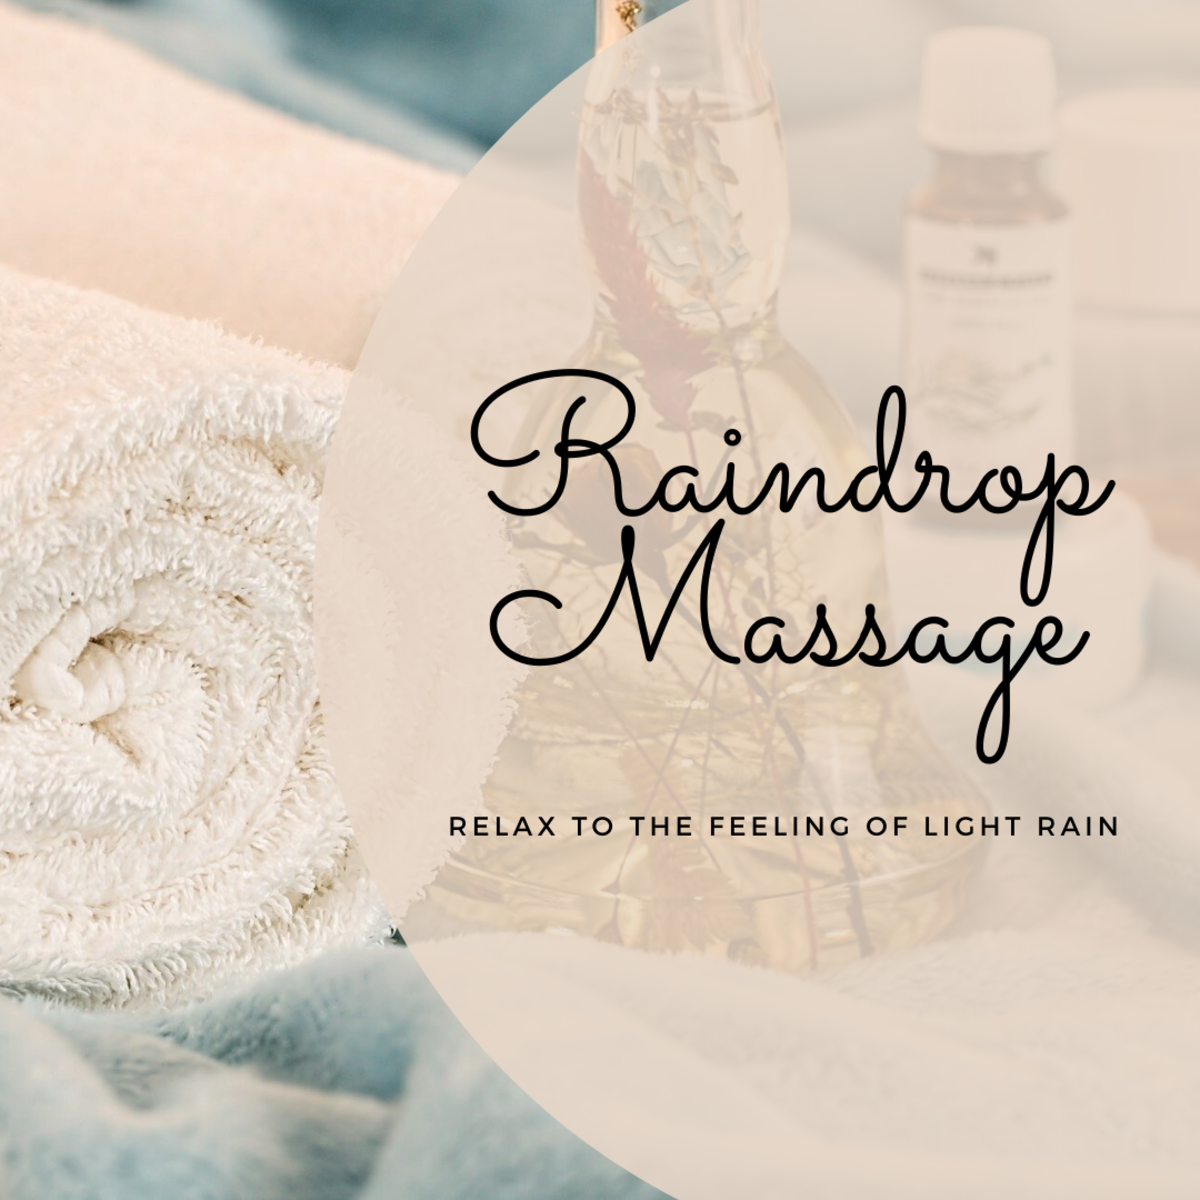 Exploring the Raindrop Massage Technique